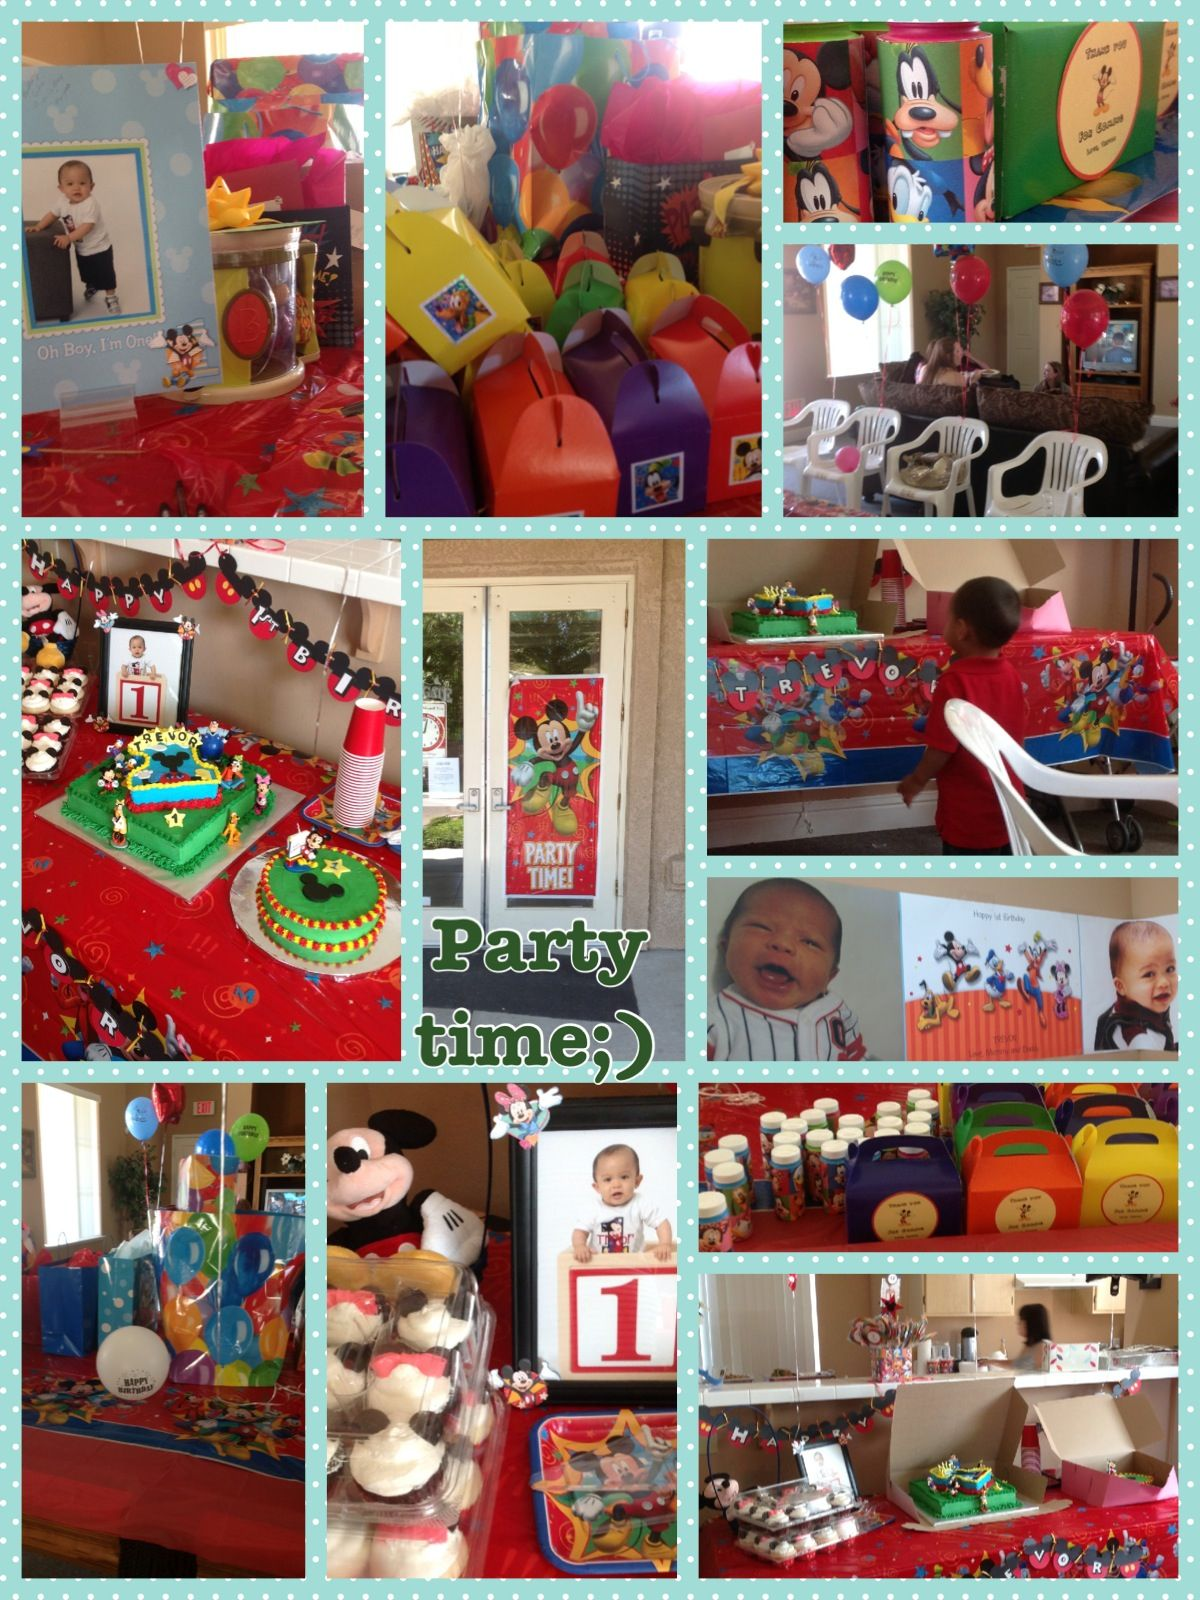 Mickey Mouse clubhouse .Banner from Walgreens photo .Party favor box ...